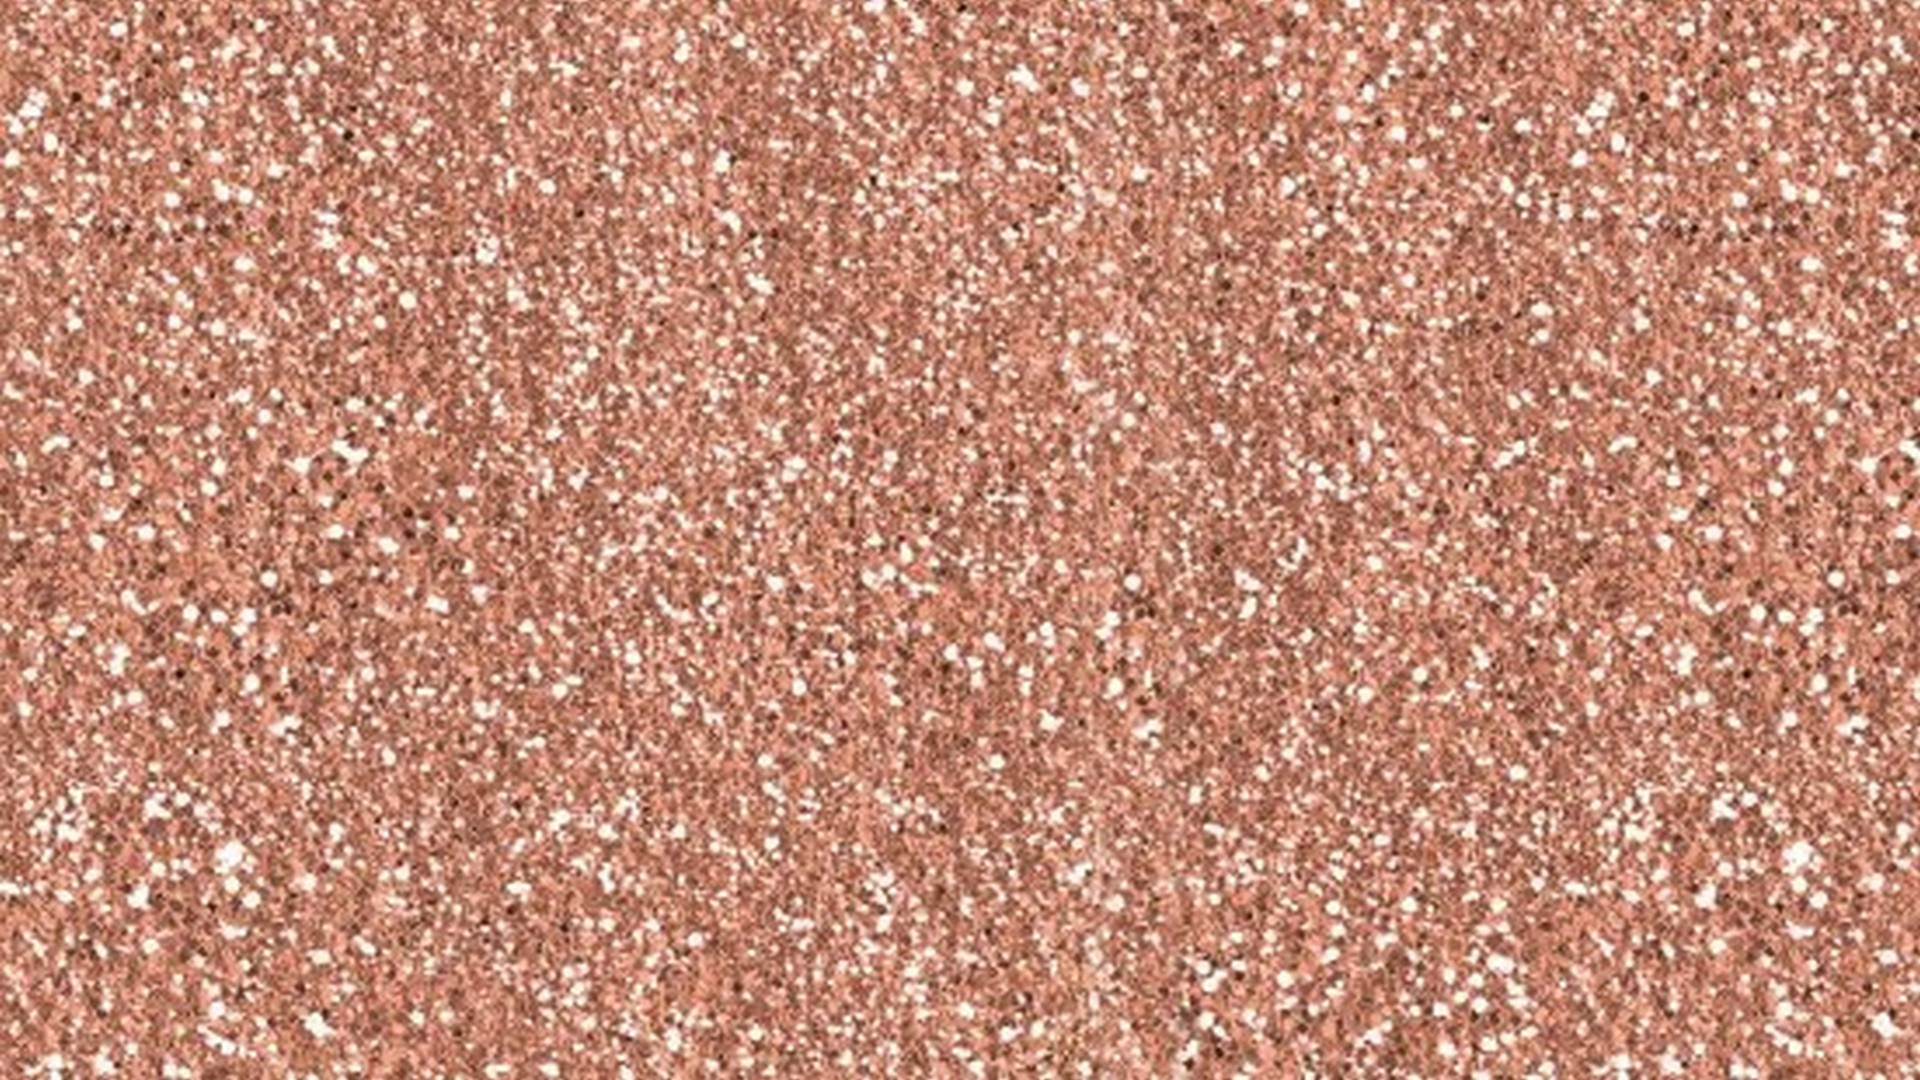 1920x1080 Glitter Gold Background Wallpaper Great Rose Gold Glitter Wallpaper for  Desktop 2018 Cute